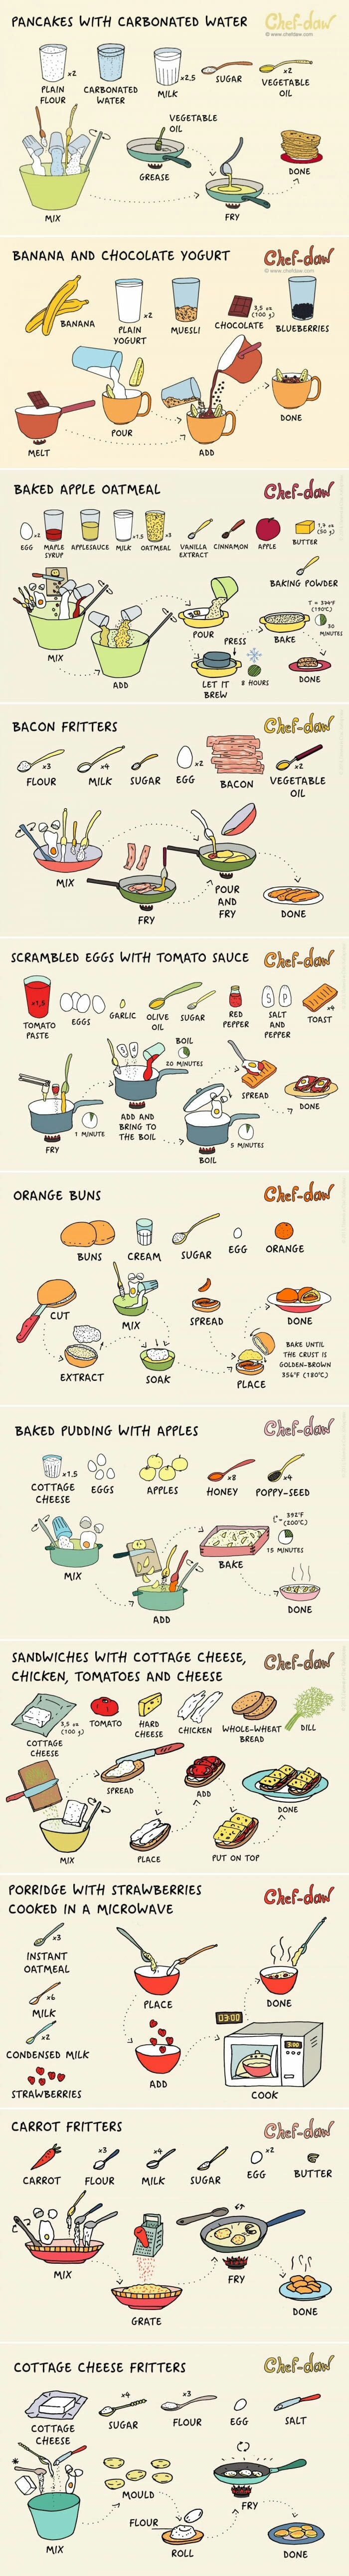 Great mood booster recipes